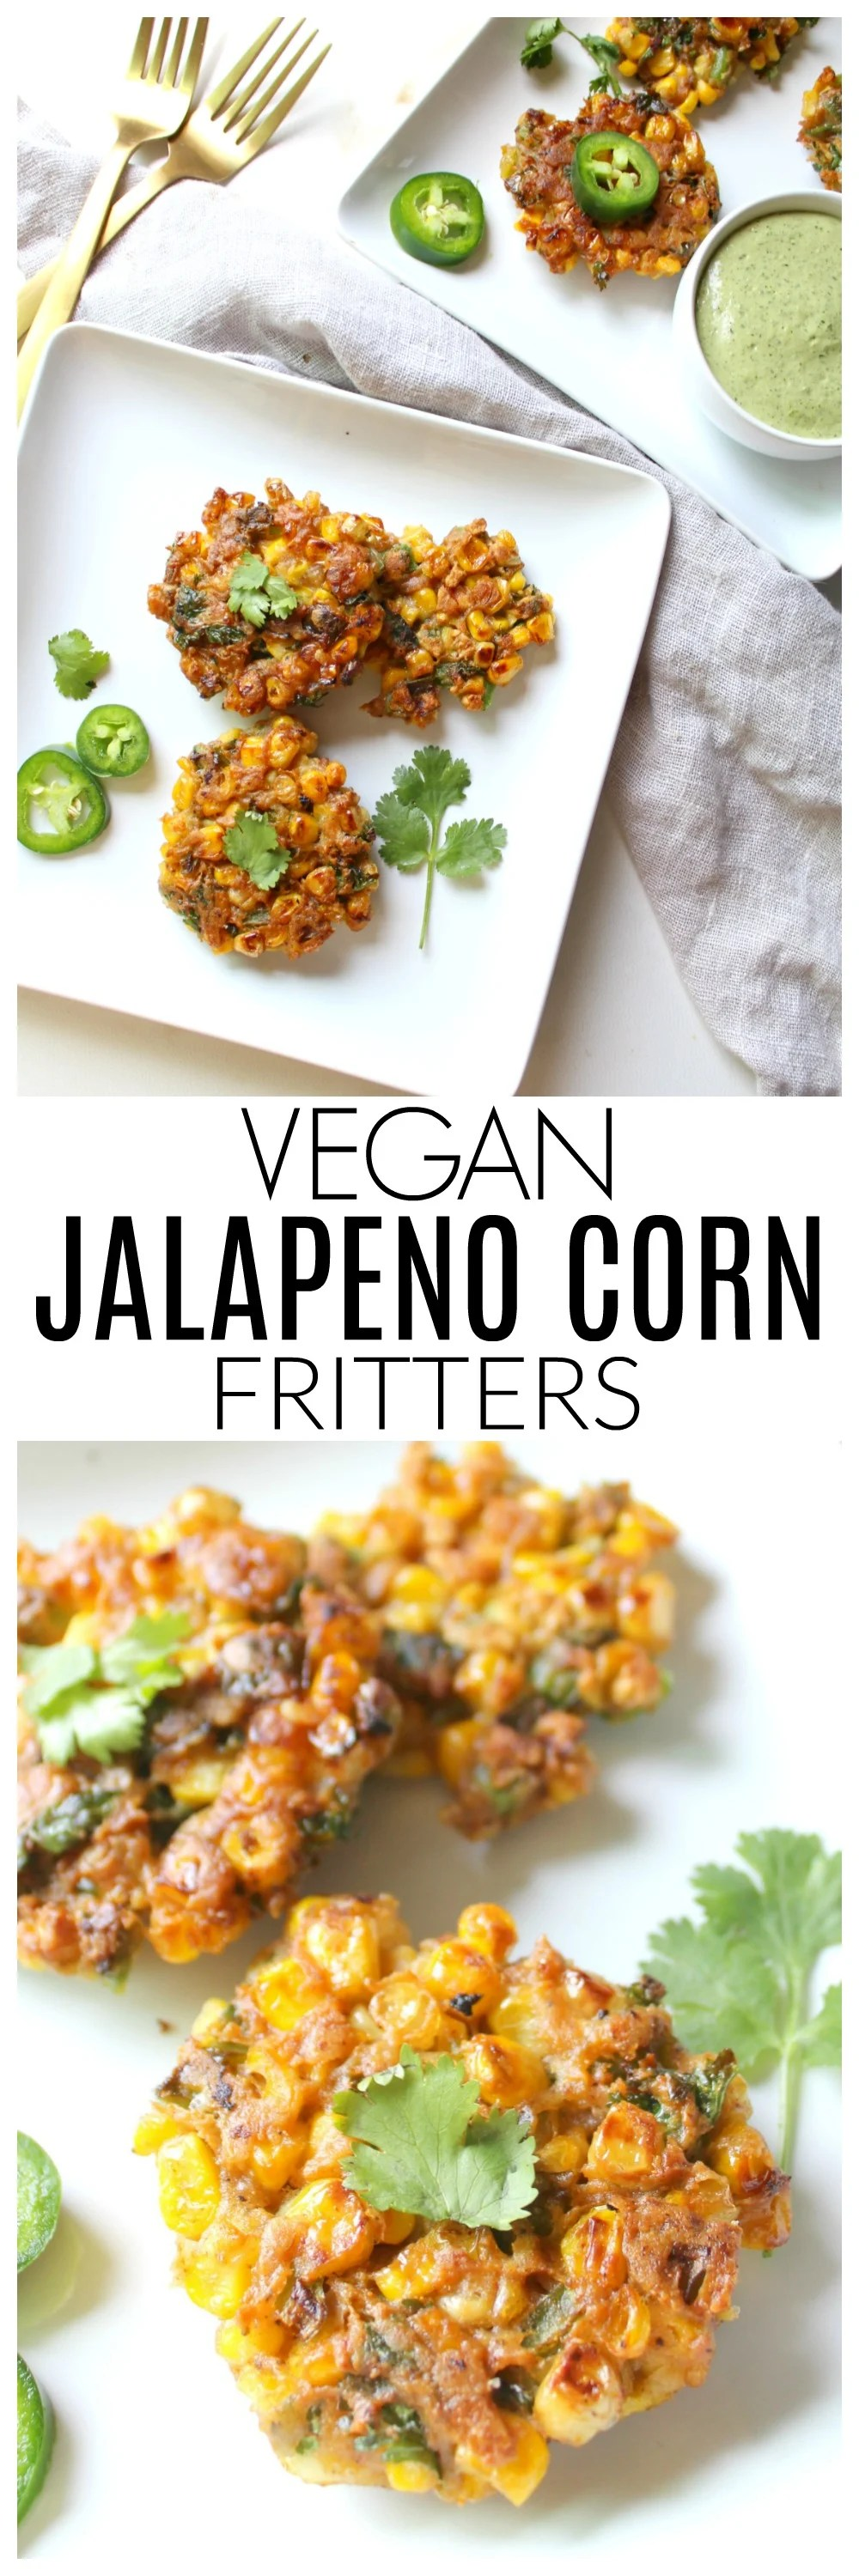 TheseVegan Jalapeño Corn Fritters are crispy and packed full of flavor. Perfect as an appetizer, snack or serve over a salad for a full meal | ThisSavoryVegan.com